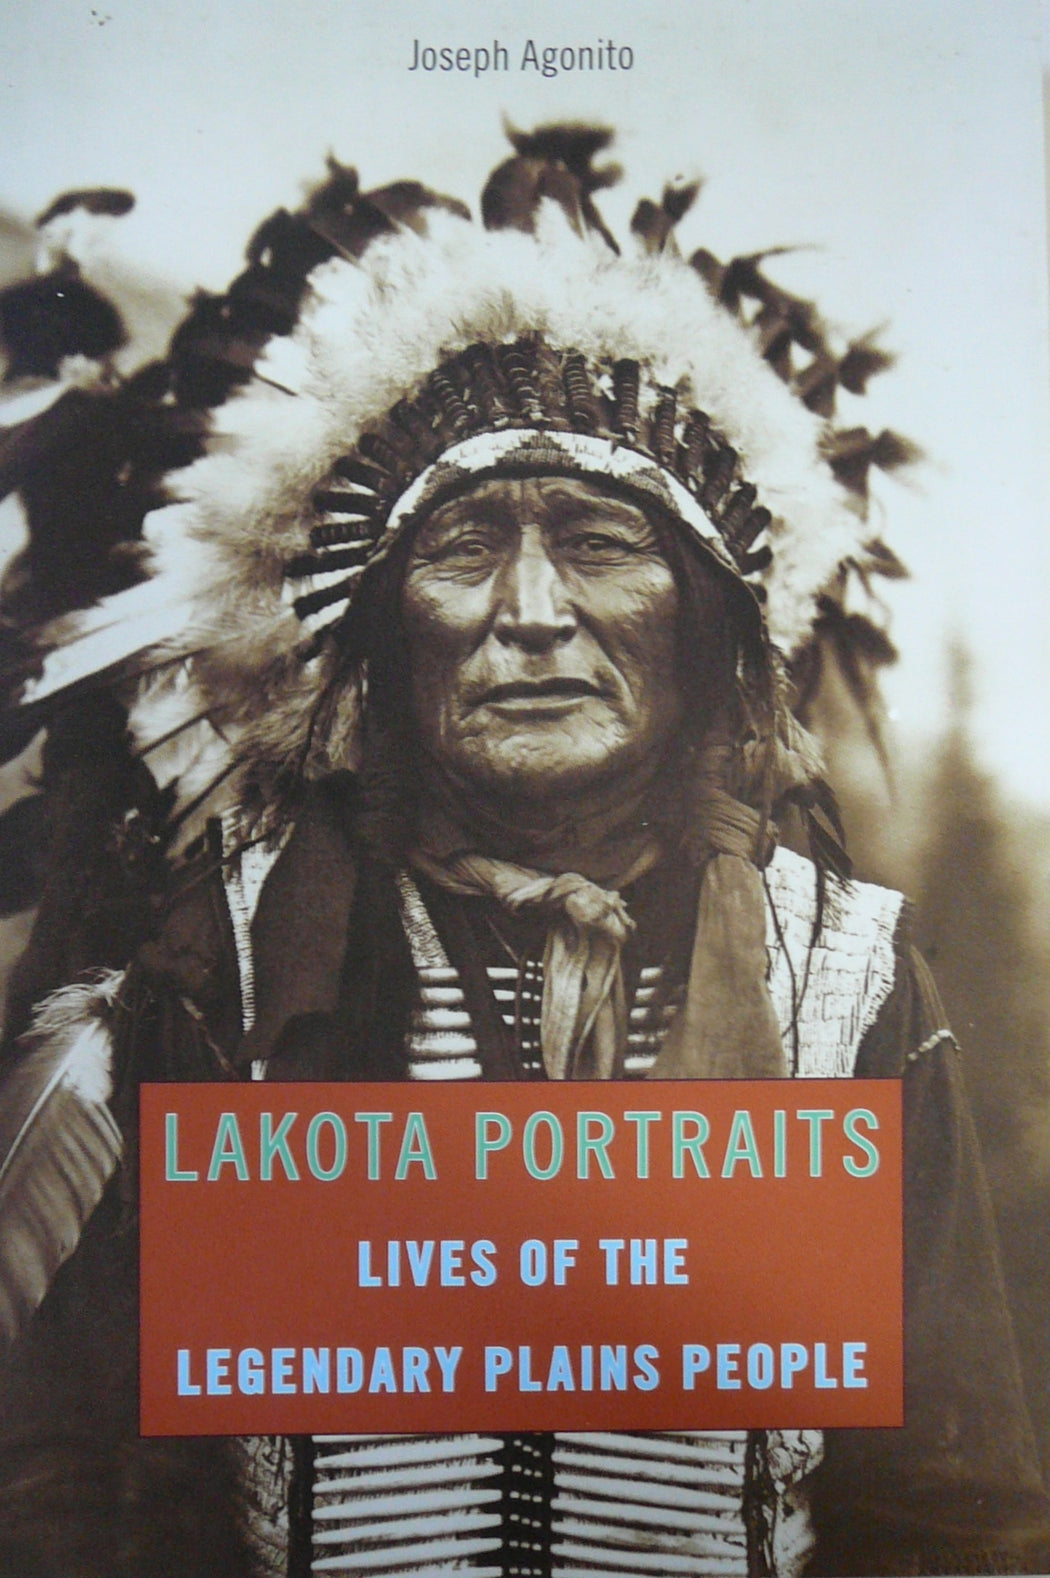 Lakota Portraits lives of the legendary plains people